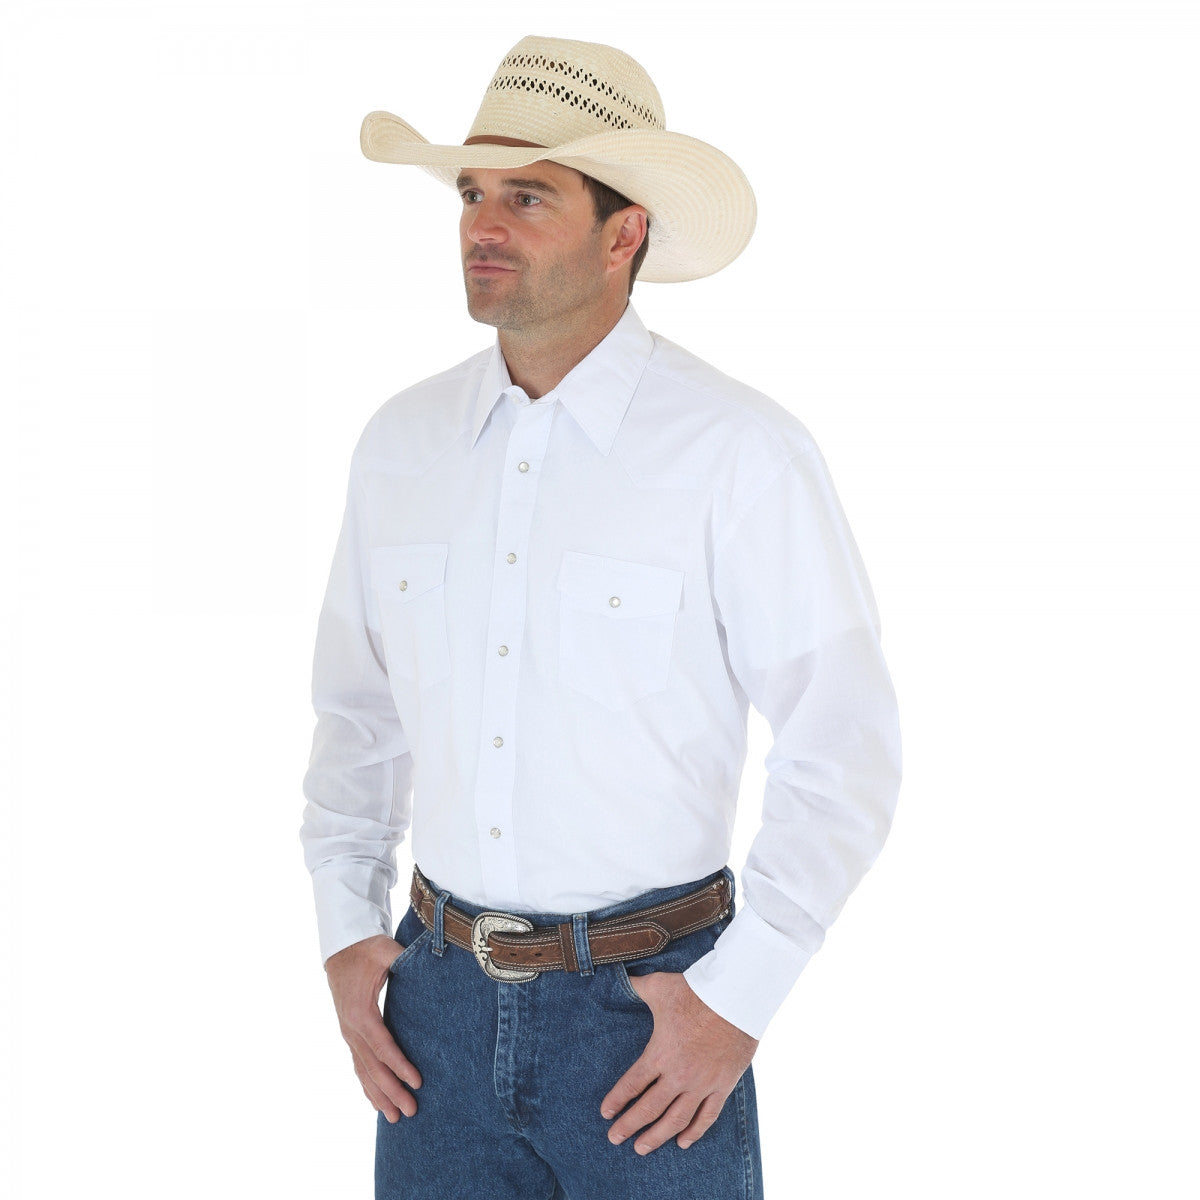 Men's Wrangler Sport Western Snap Shirt #71105WH (Big and Tall)